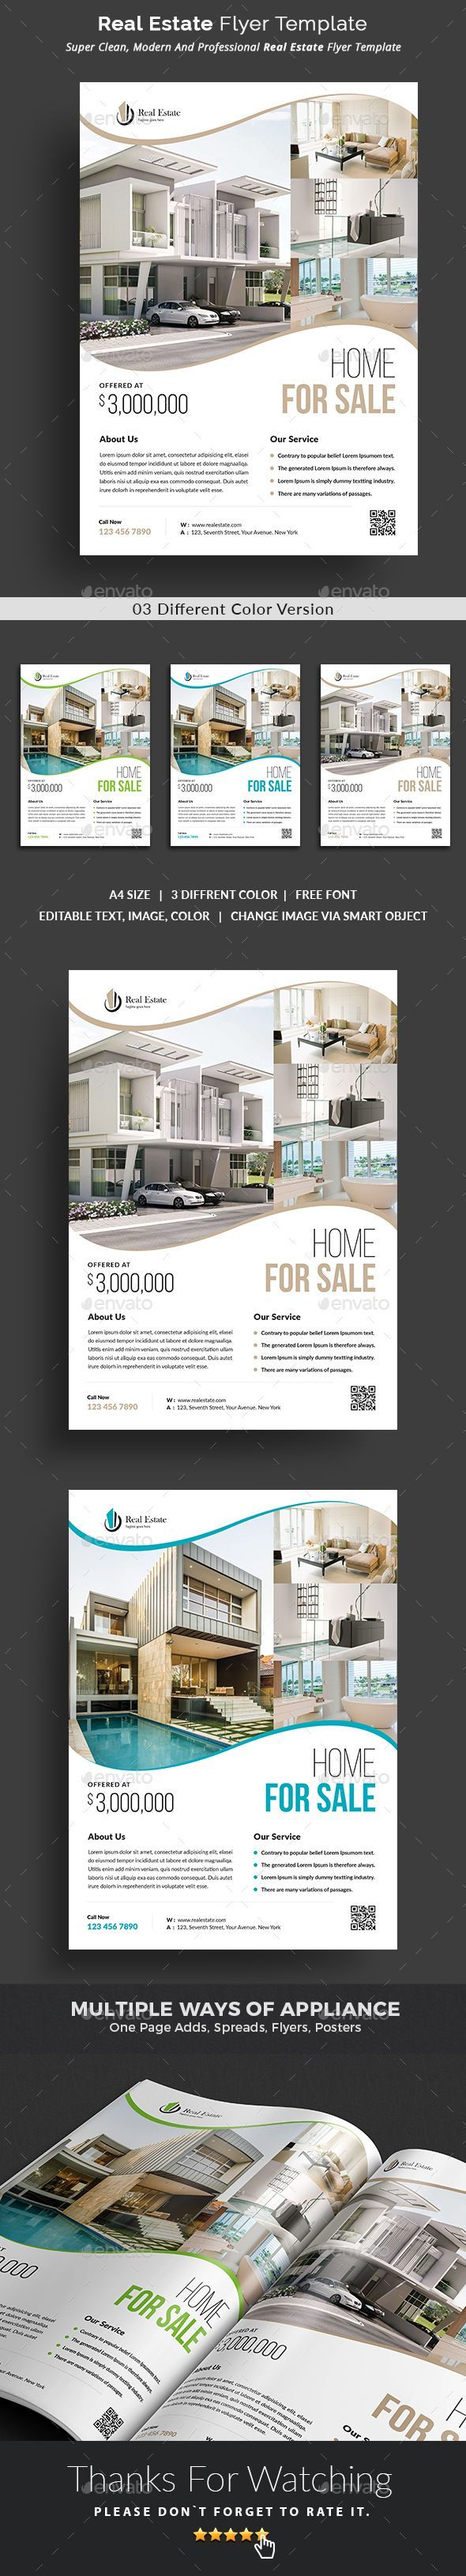 Real Estate Flyer - #Commerce #Flyers, This Real Estate Flyer ...